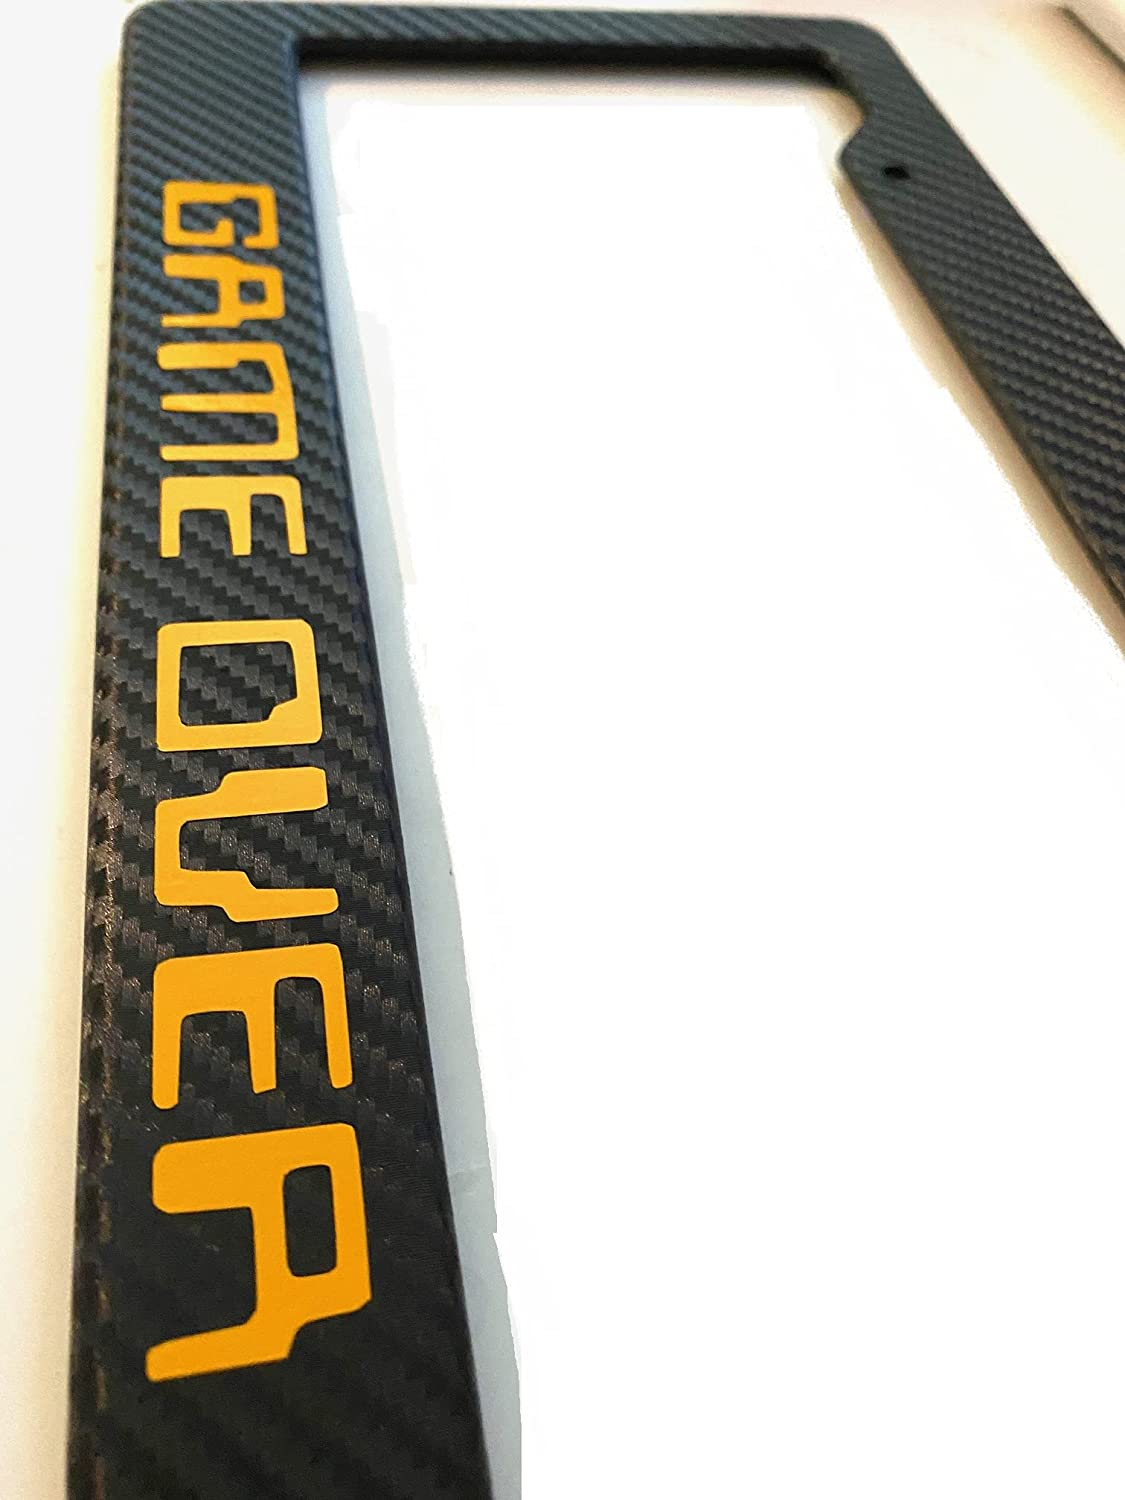 Game 5 Wholesale ☆ very popular Over 8Bit in Carbon Fiber Pl with License Yellow Automotive